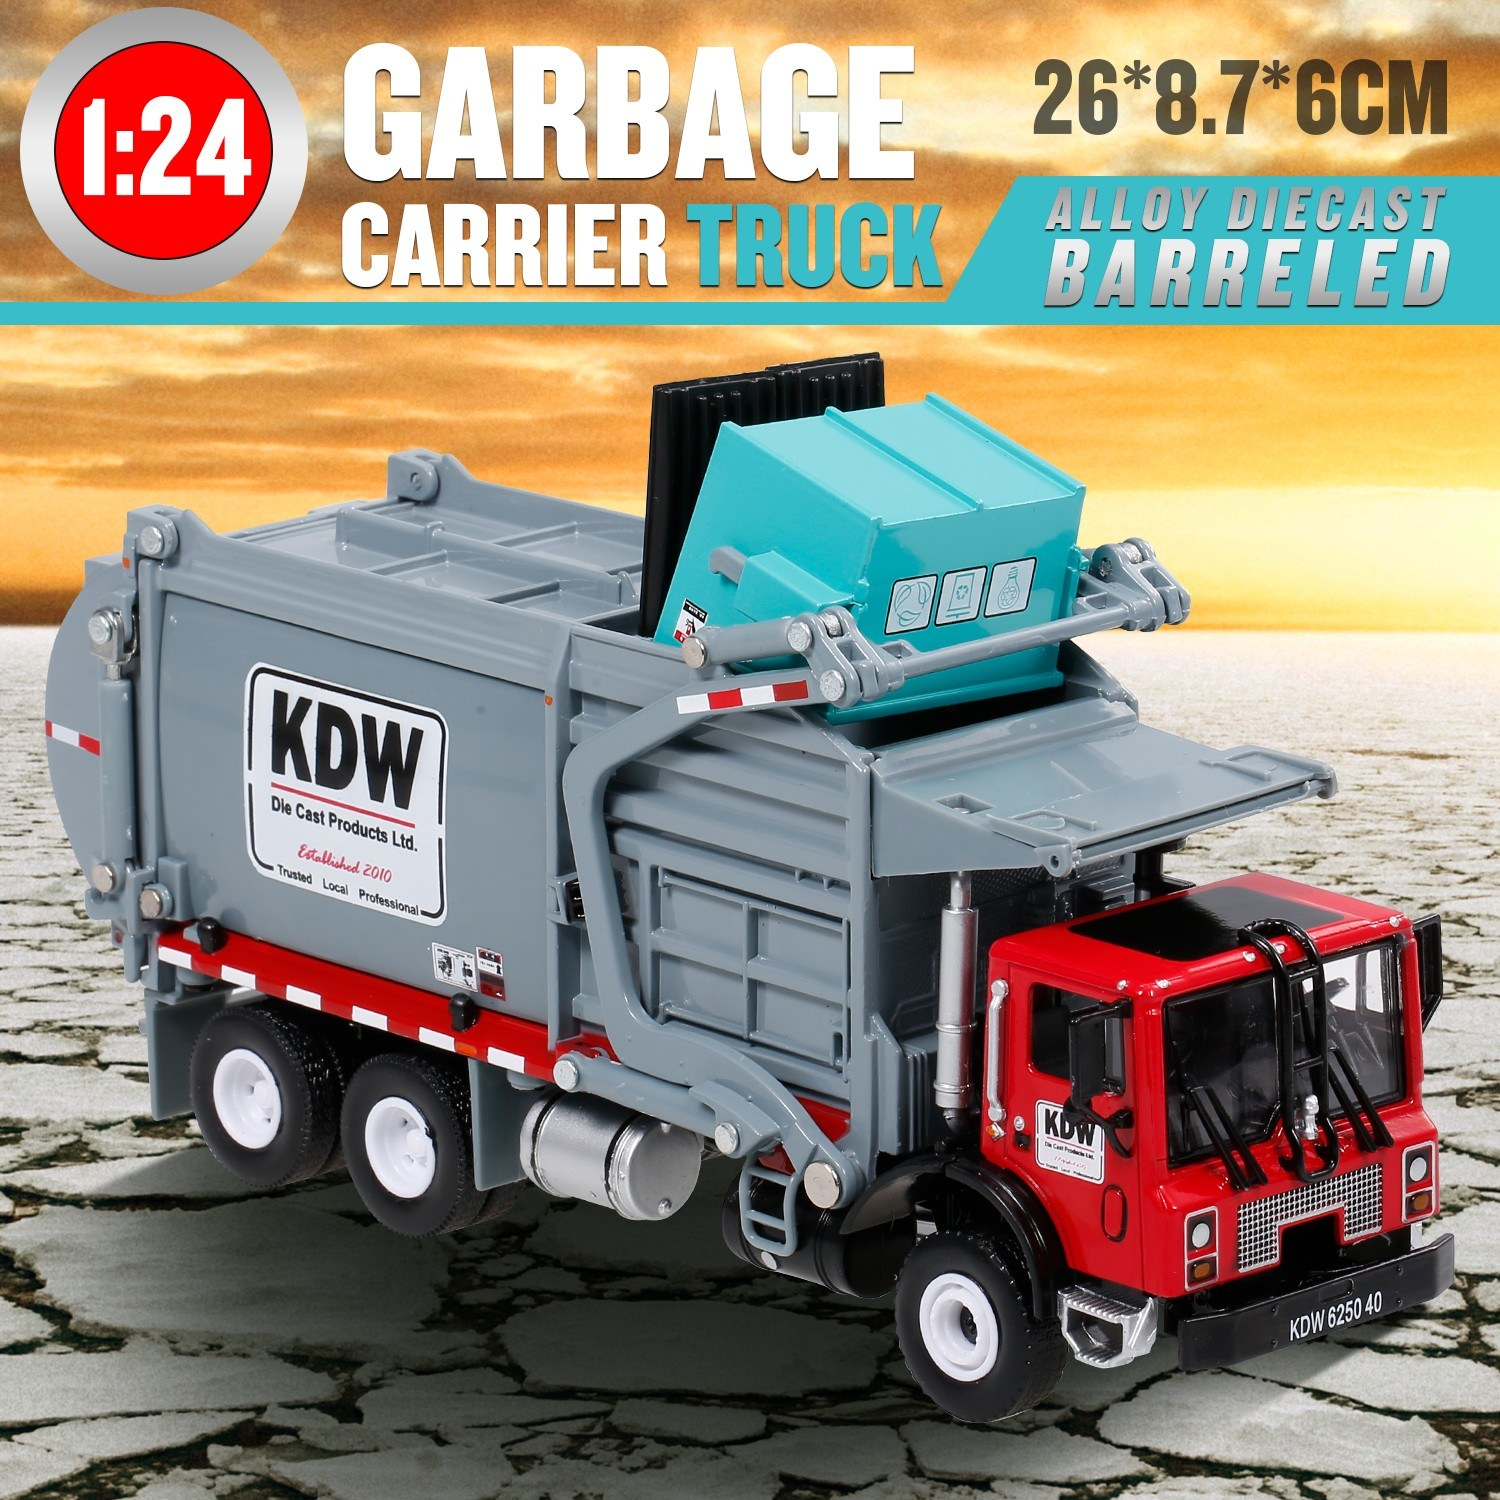 Alloy Diecast Barreled Garbage Carrier Truck 1:24 Waste Material Transporter Vehicle Mod Collector Hobby Toys for Kids Christmas Gift